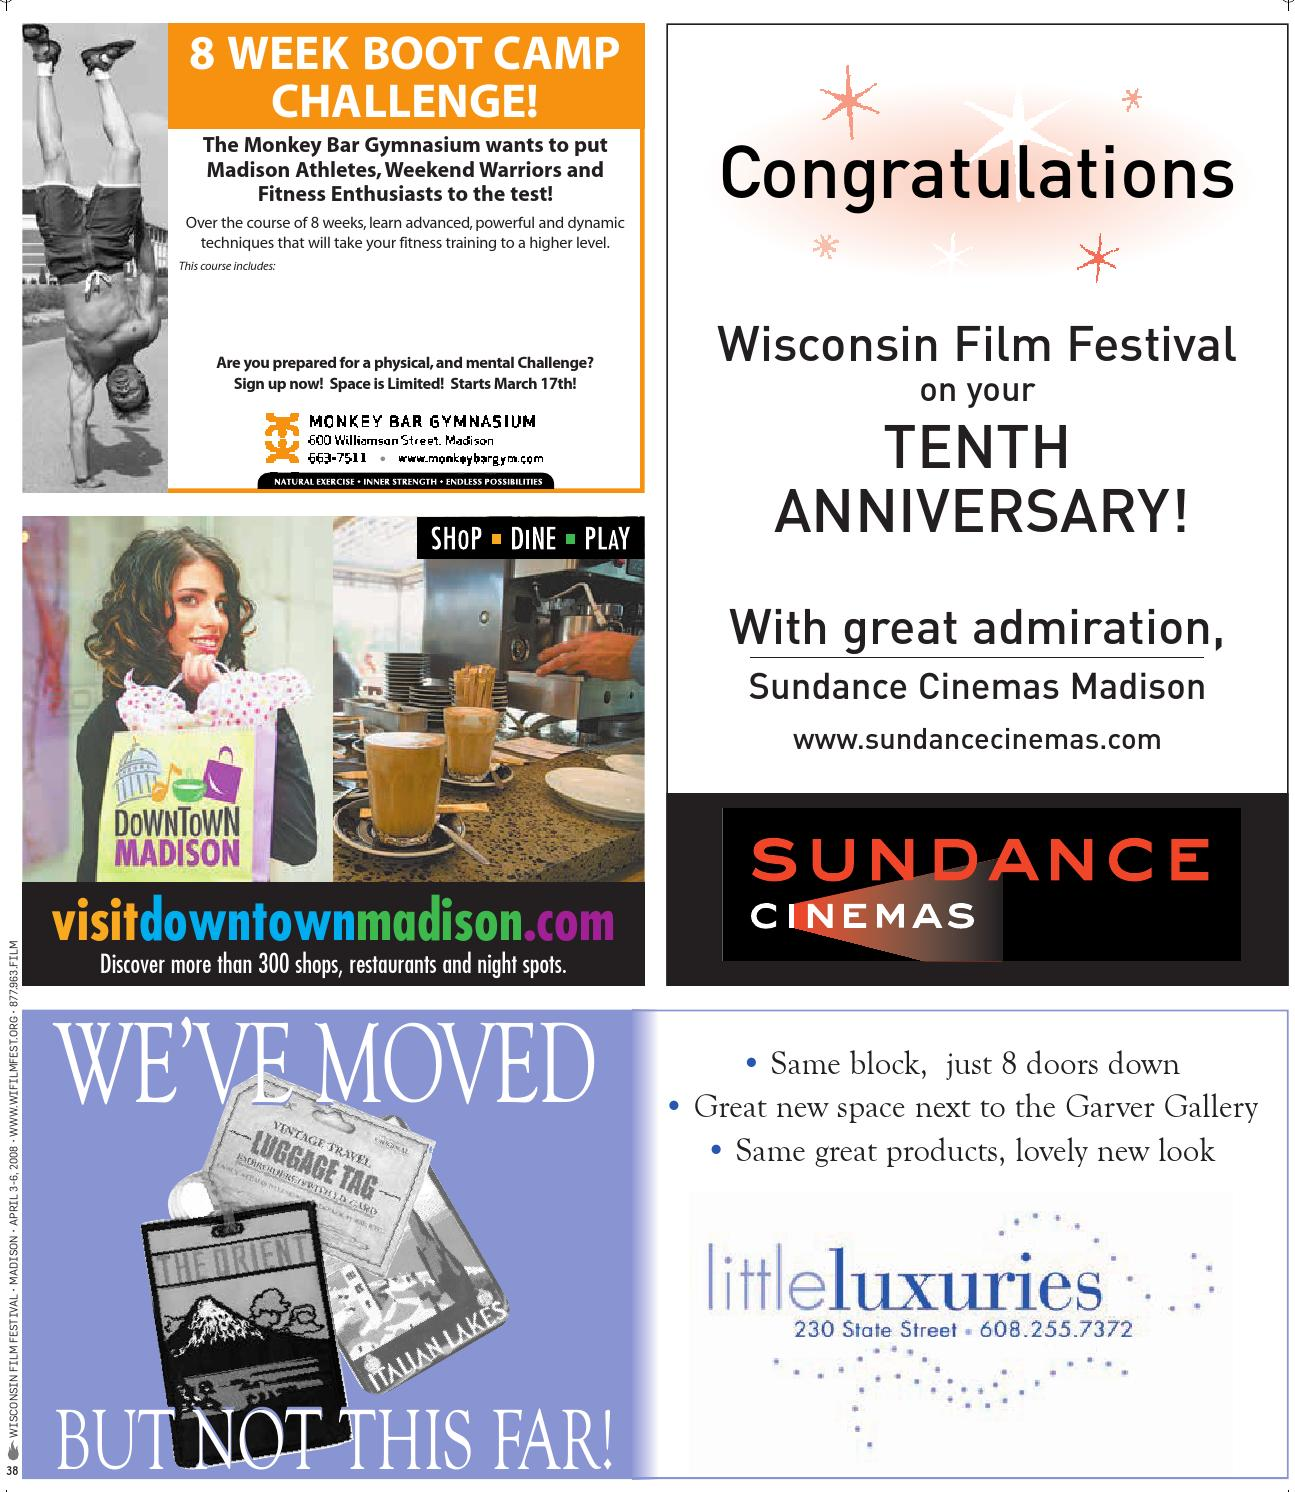 Now That Wisconsin Film Festival Has >> 2008 Wisconsin Film Festival Film Guide By Uw Madison Division Of